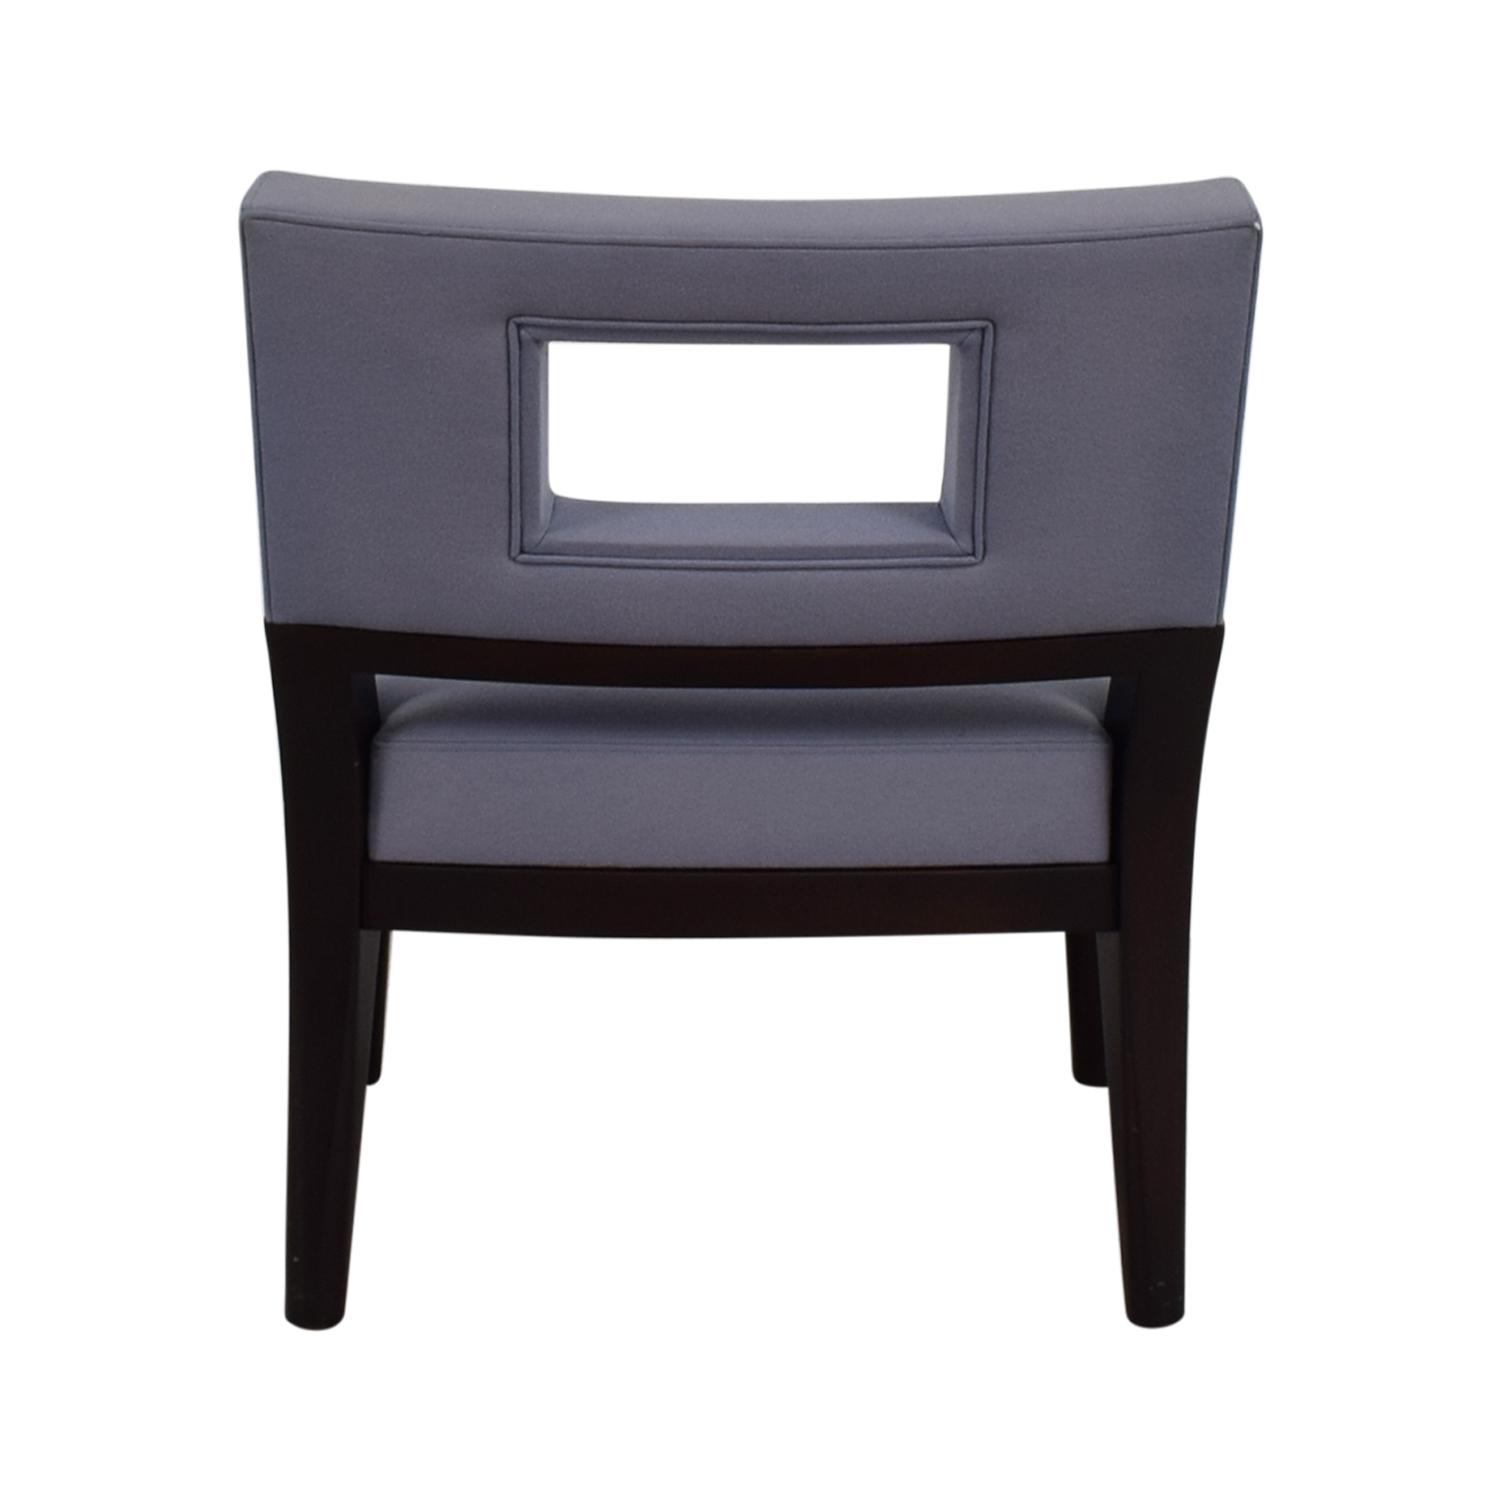 Christian Liaigre Christian Liaigre Light Blue Upholstered Chair nj